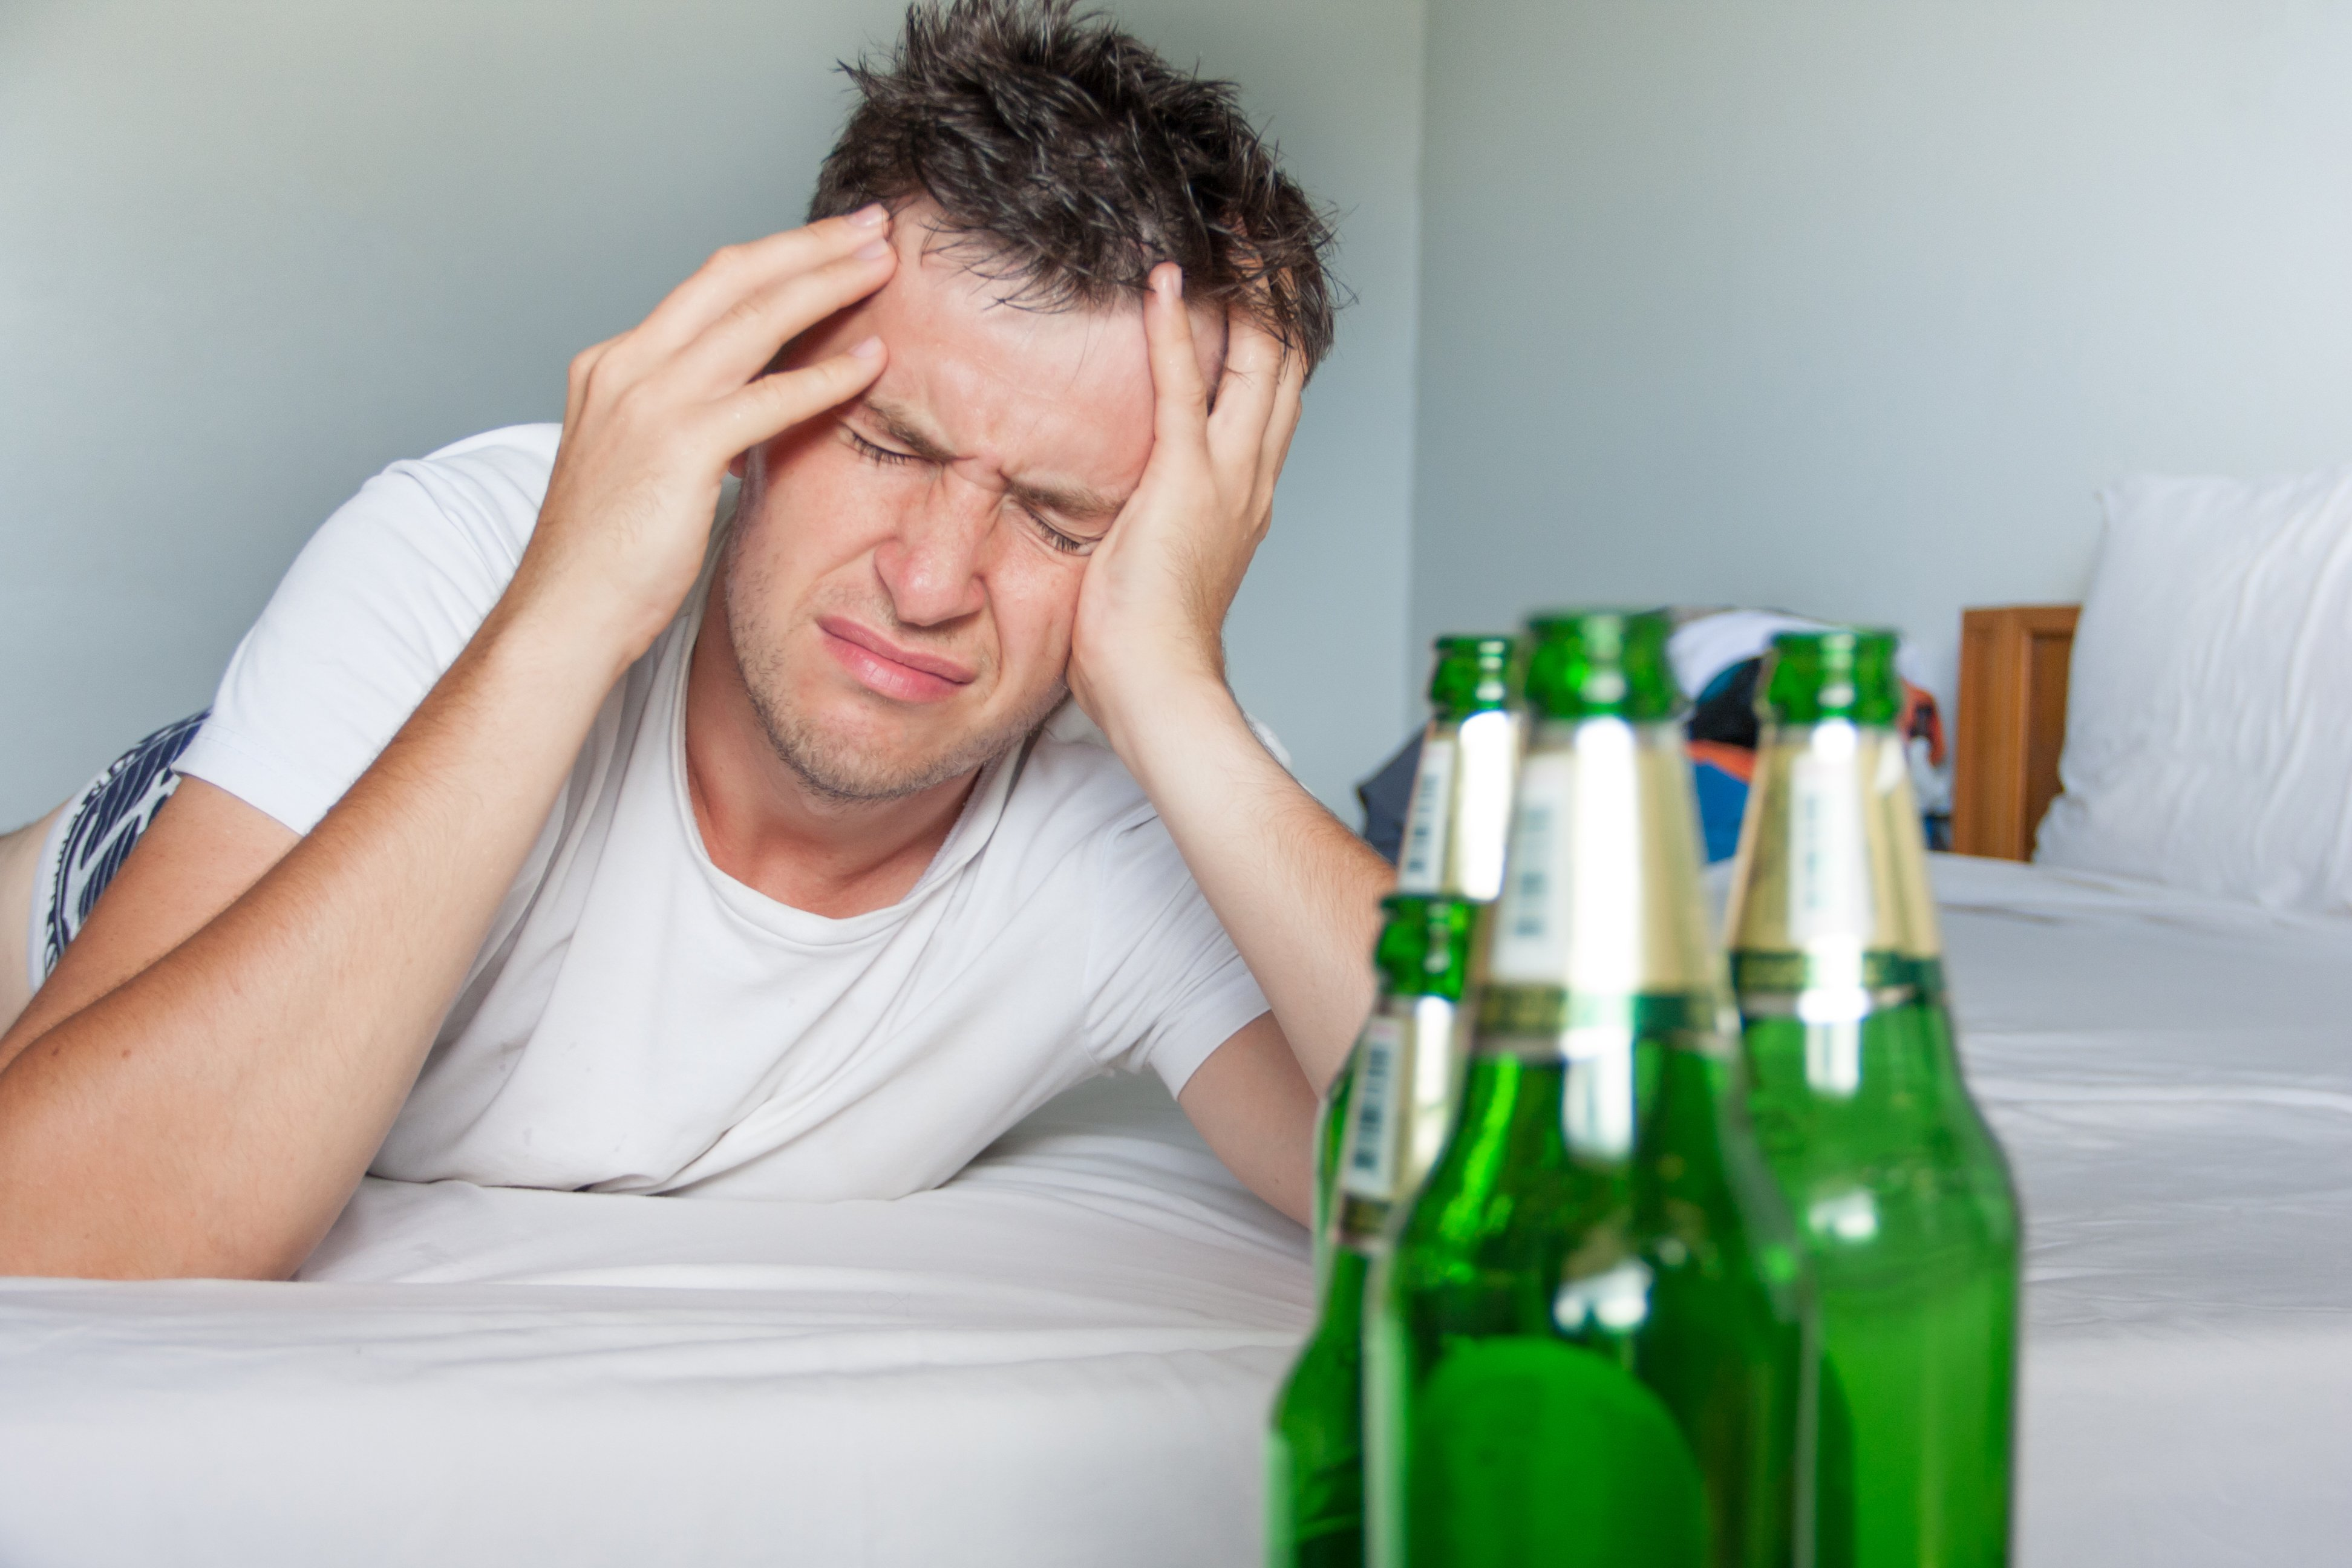 Man suffering from a hangover whileholding his aching head | Photo: Shutterstock/Michael Traitov